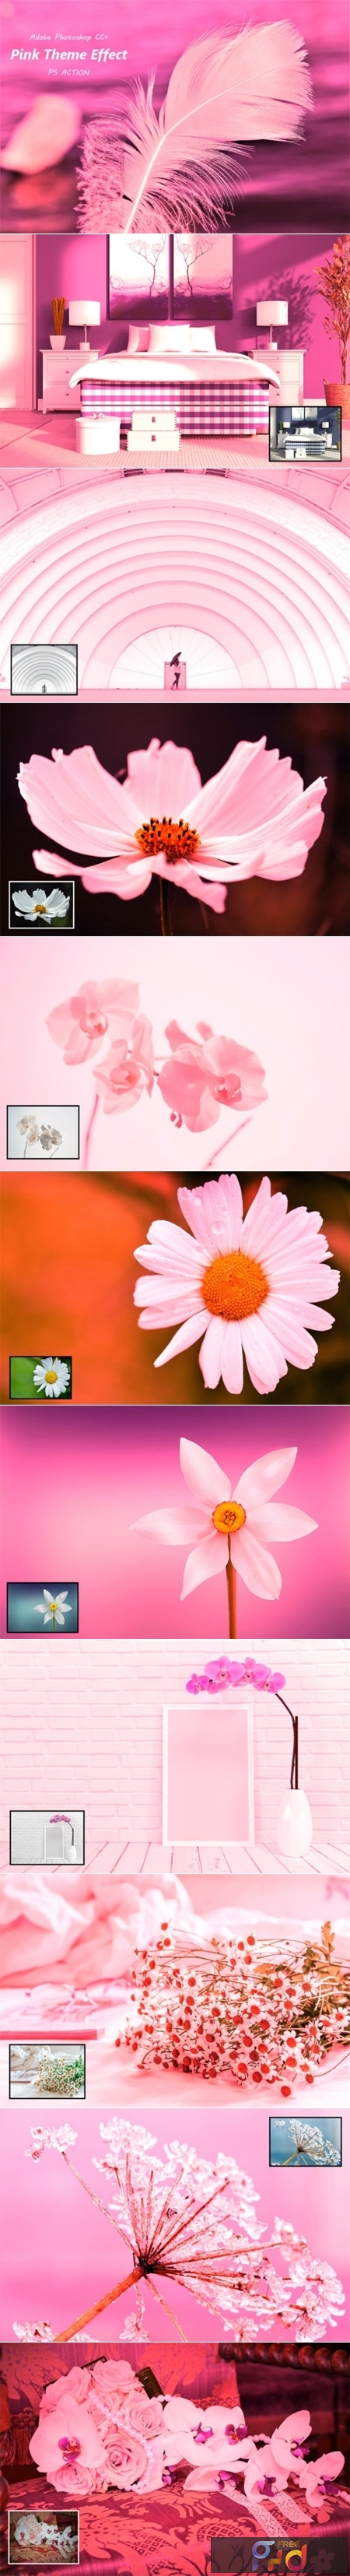 Pink Theme Effect Ps Action 2127520 1